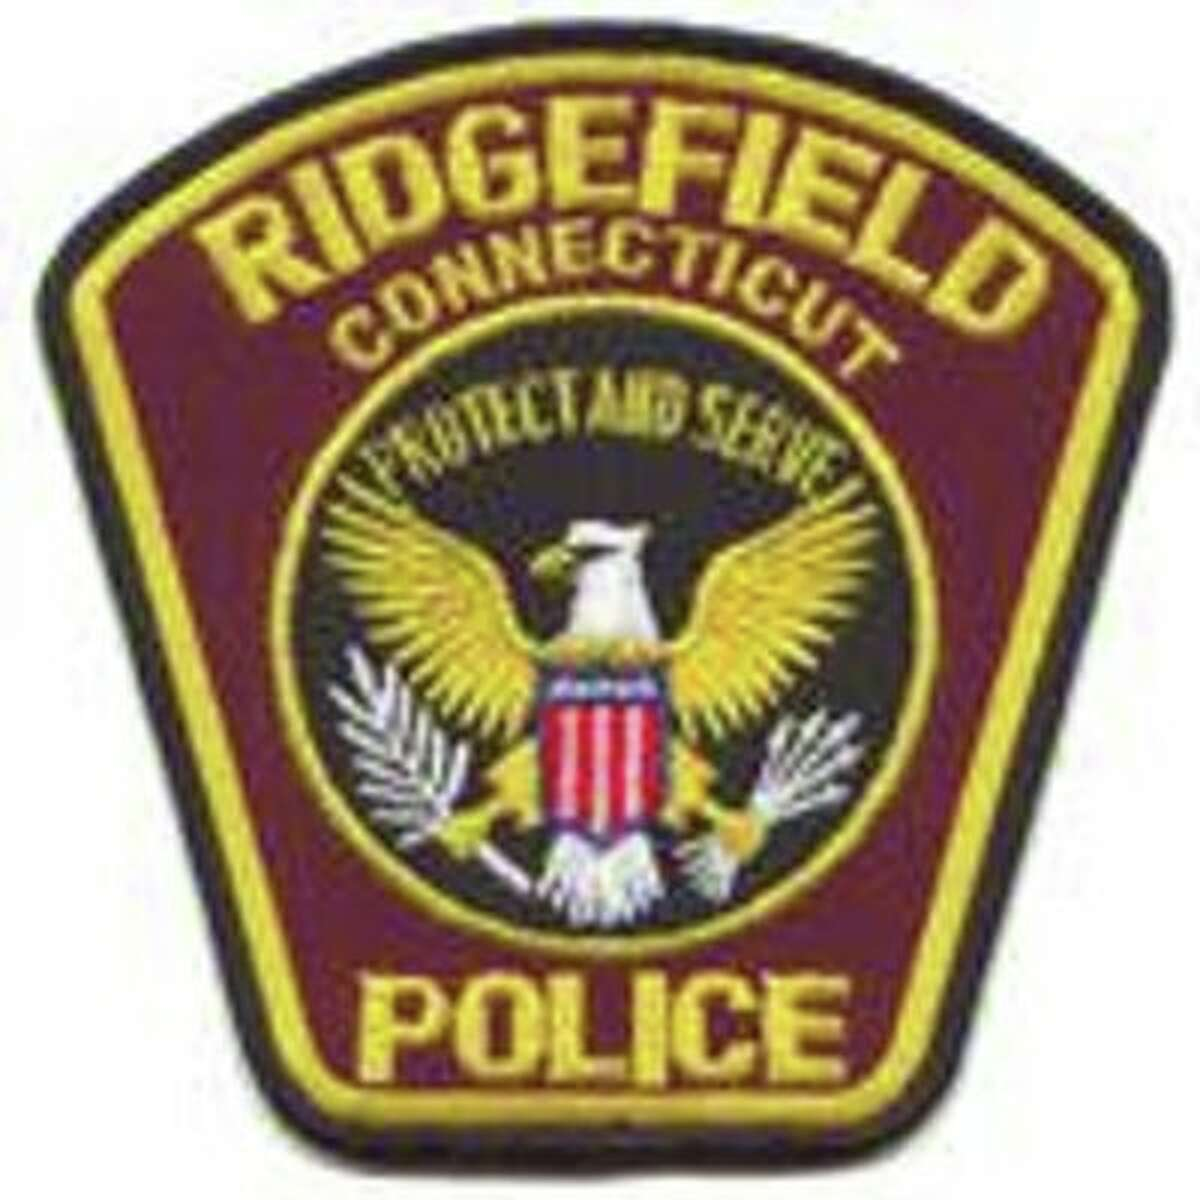 There have been three cars stolen in Ridgefield in 2019. Police are warning residents to lock their doors at night.